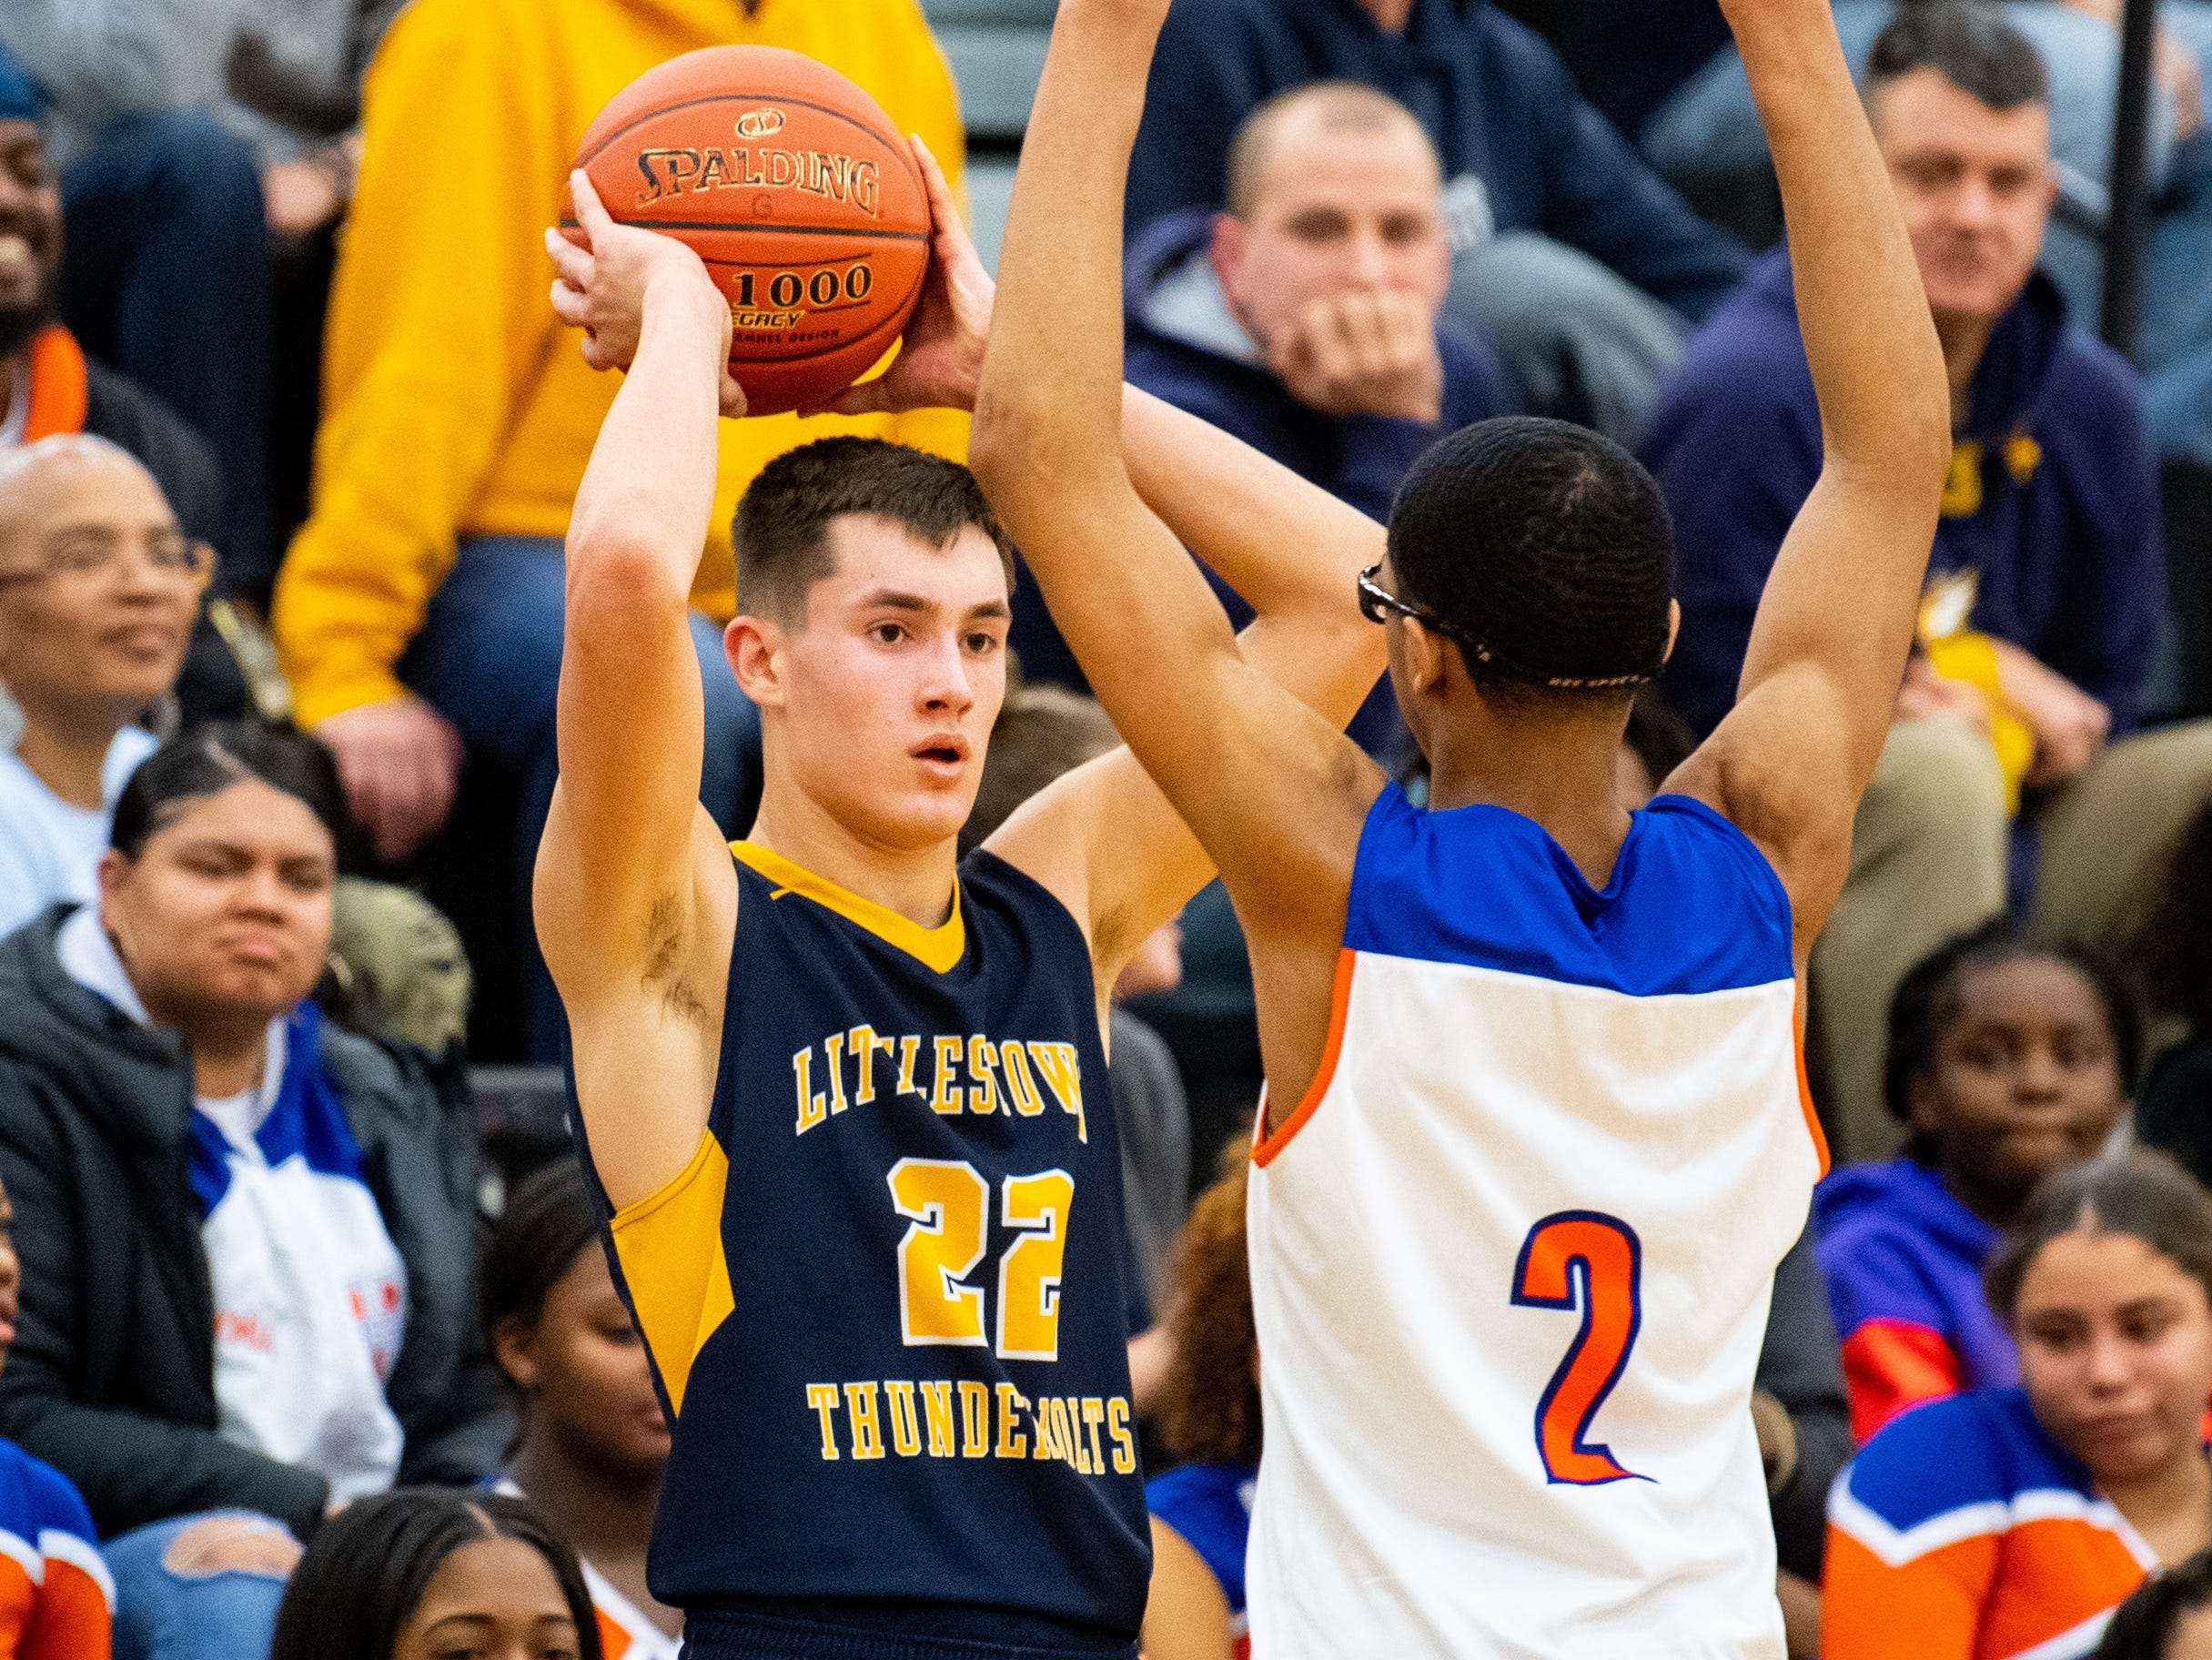 Logan Collins (22) passes the ball in during the YAIAA boys' basketball semifinals between York High and Littlestown, Wednesday, February 13, 2019 at Red Lion Area High School. The Bearcats defeated the Thunderbolts 74 to 51.